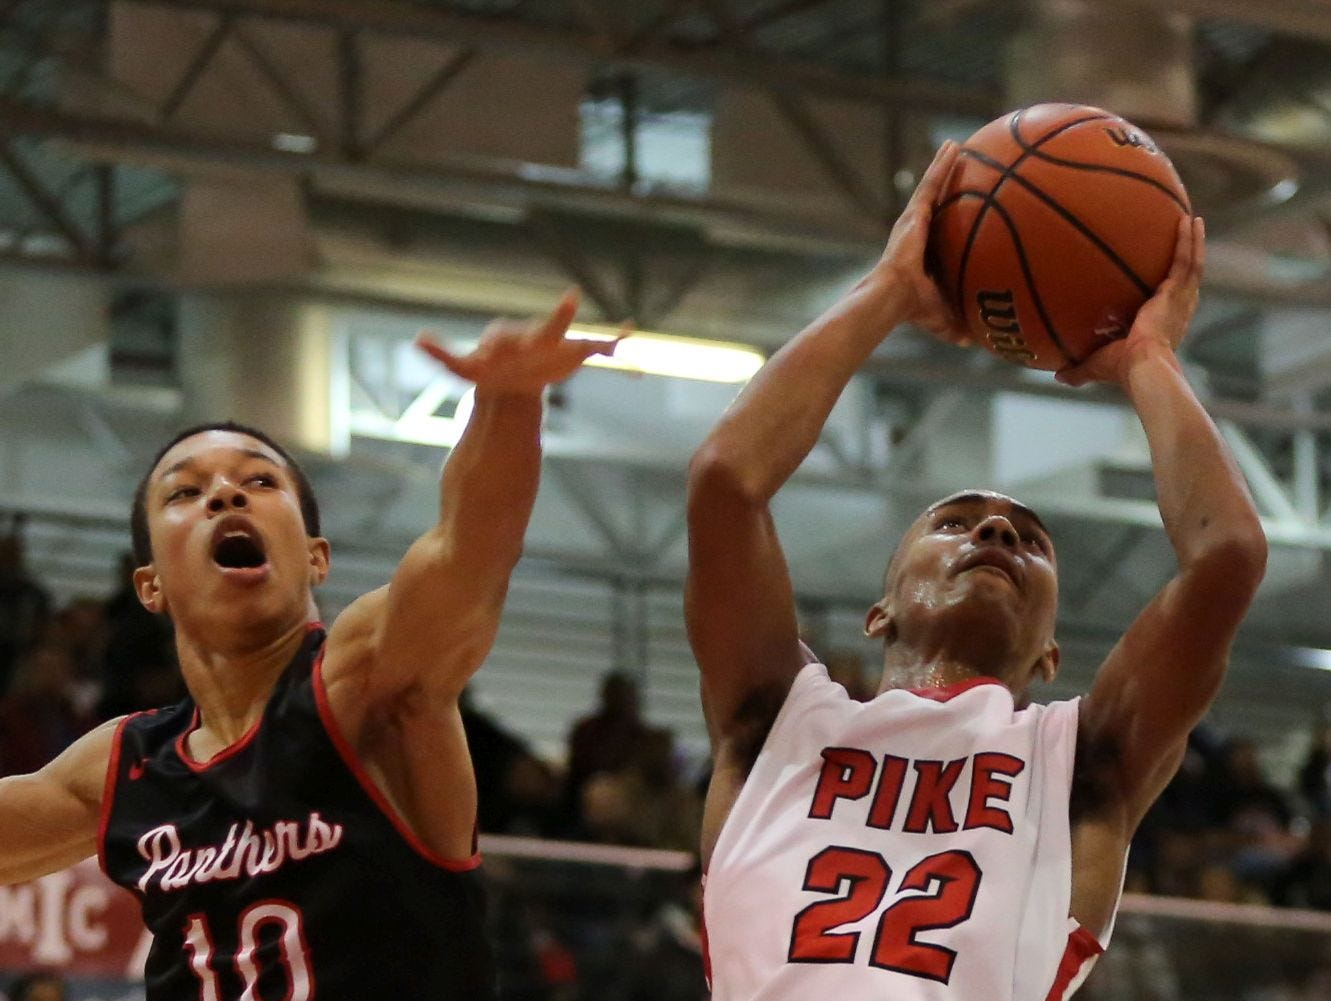 North Central coasted to a 77-63 win Friday night against MIC rival Pike.